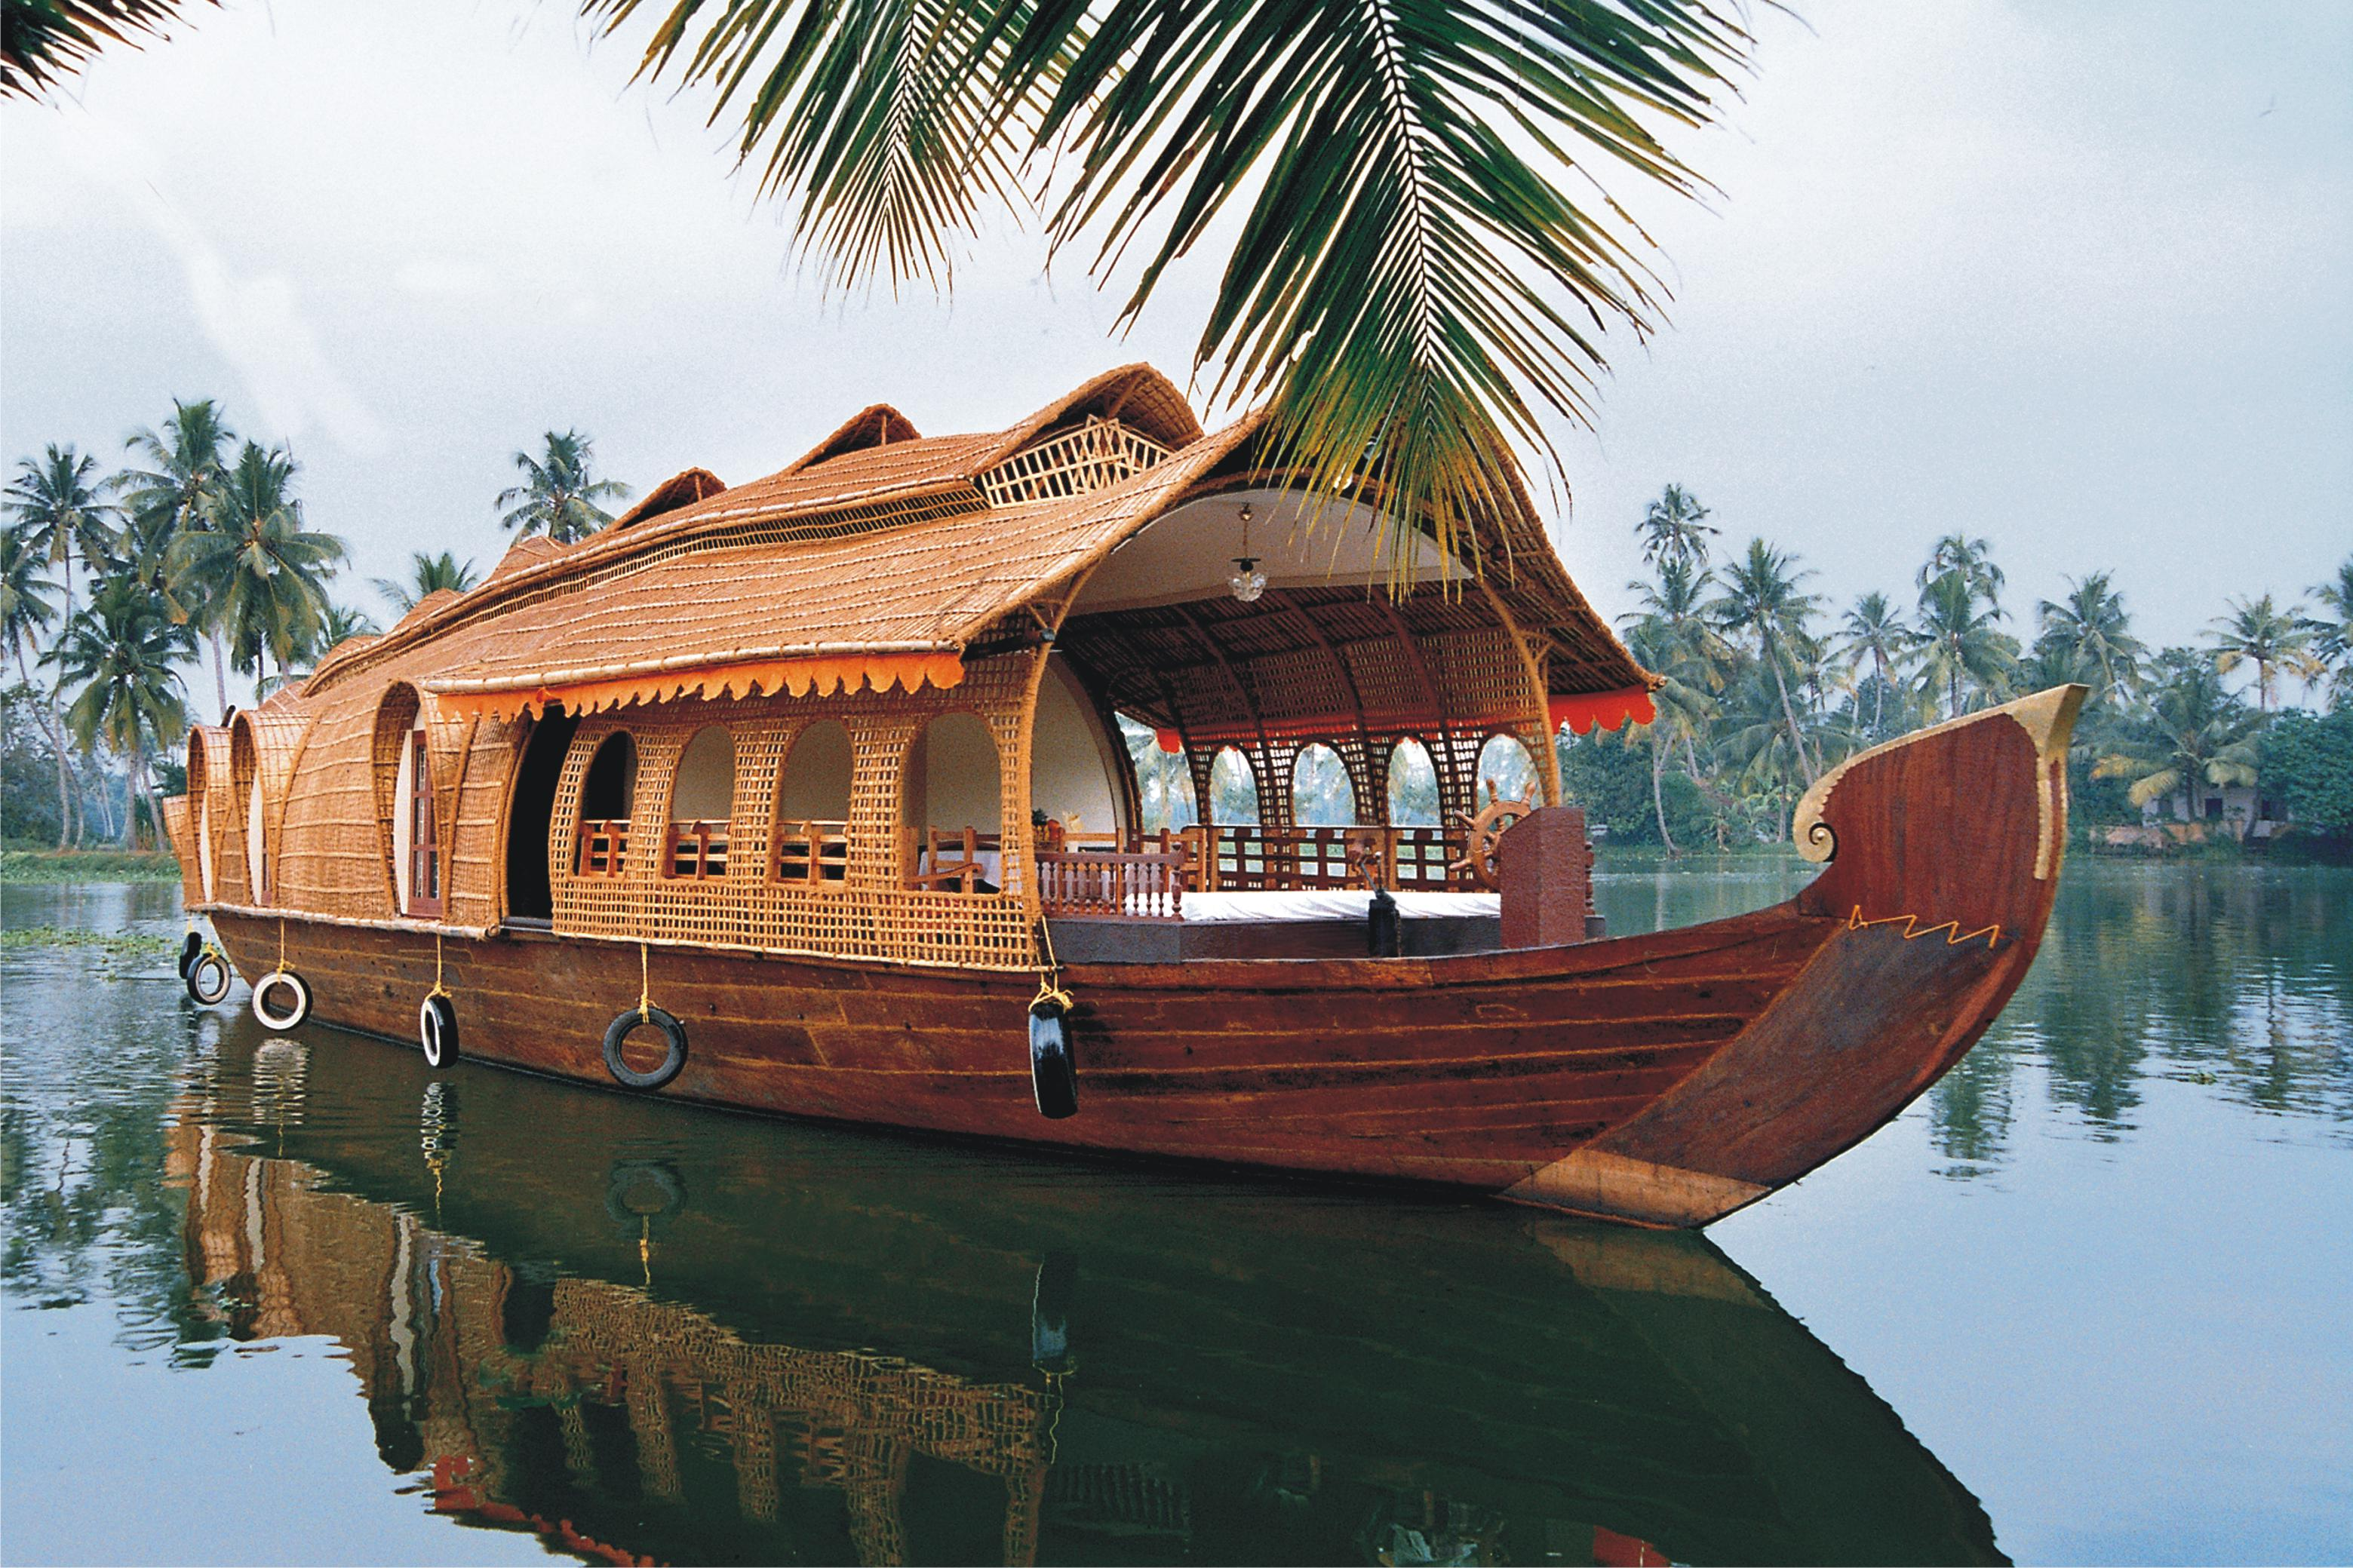 kerela honeymoon destination india